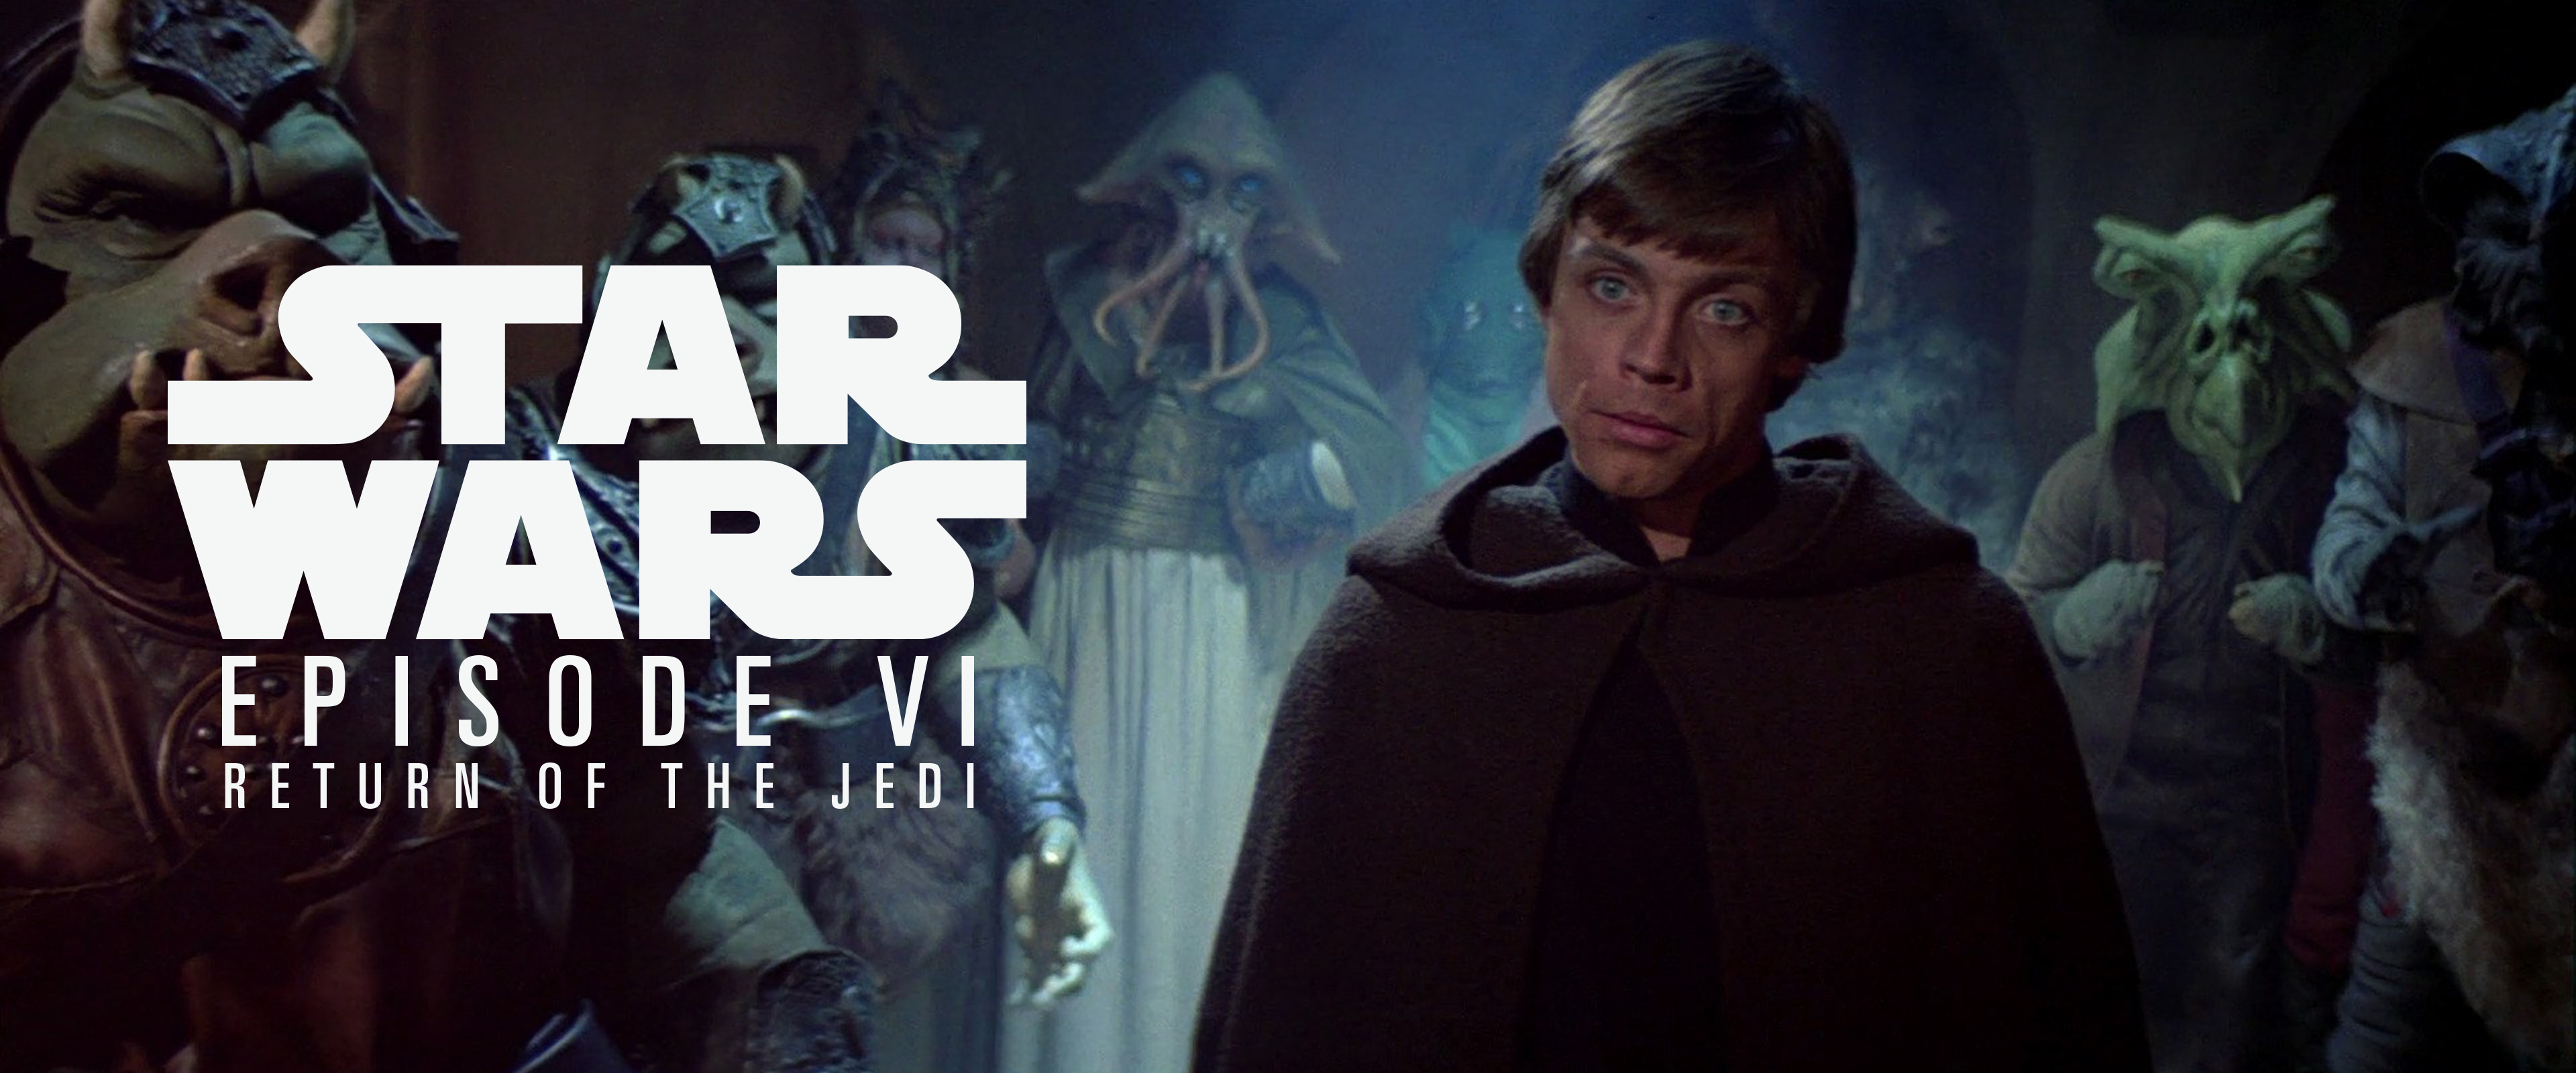 Episode VI: Return of the Jedi